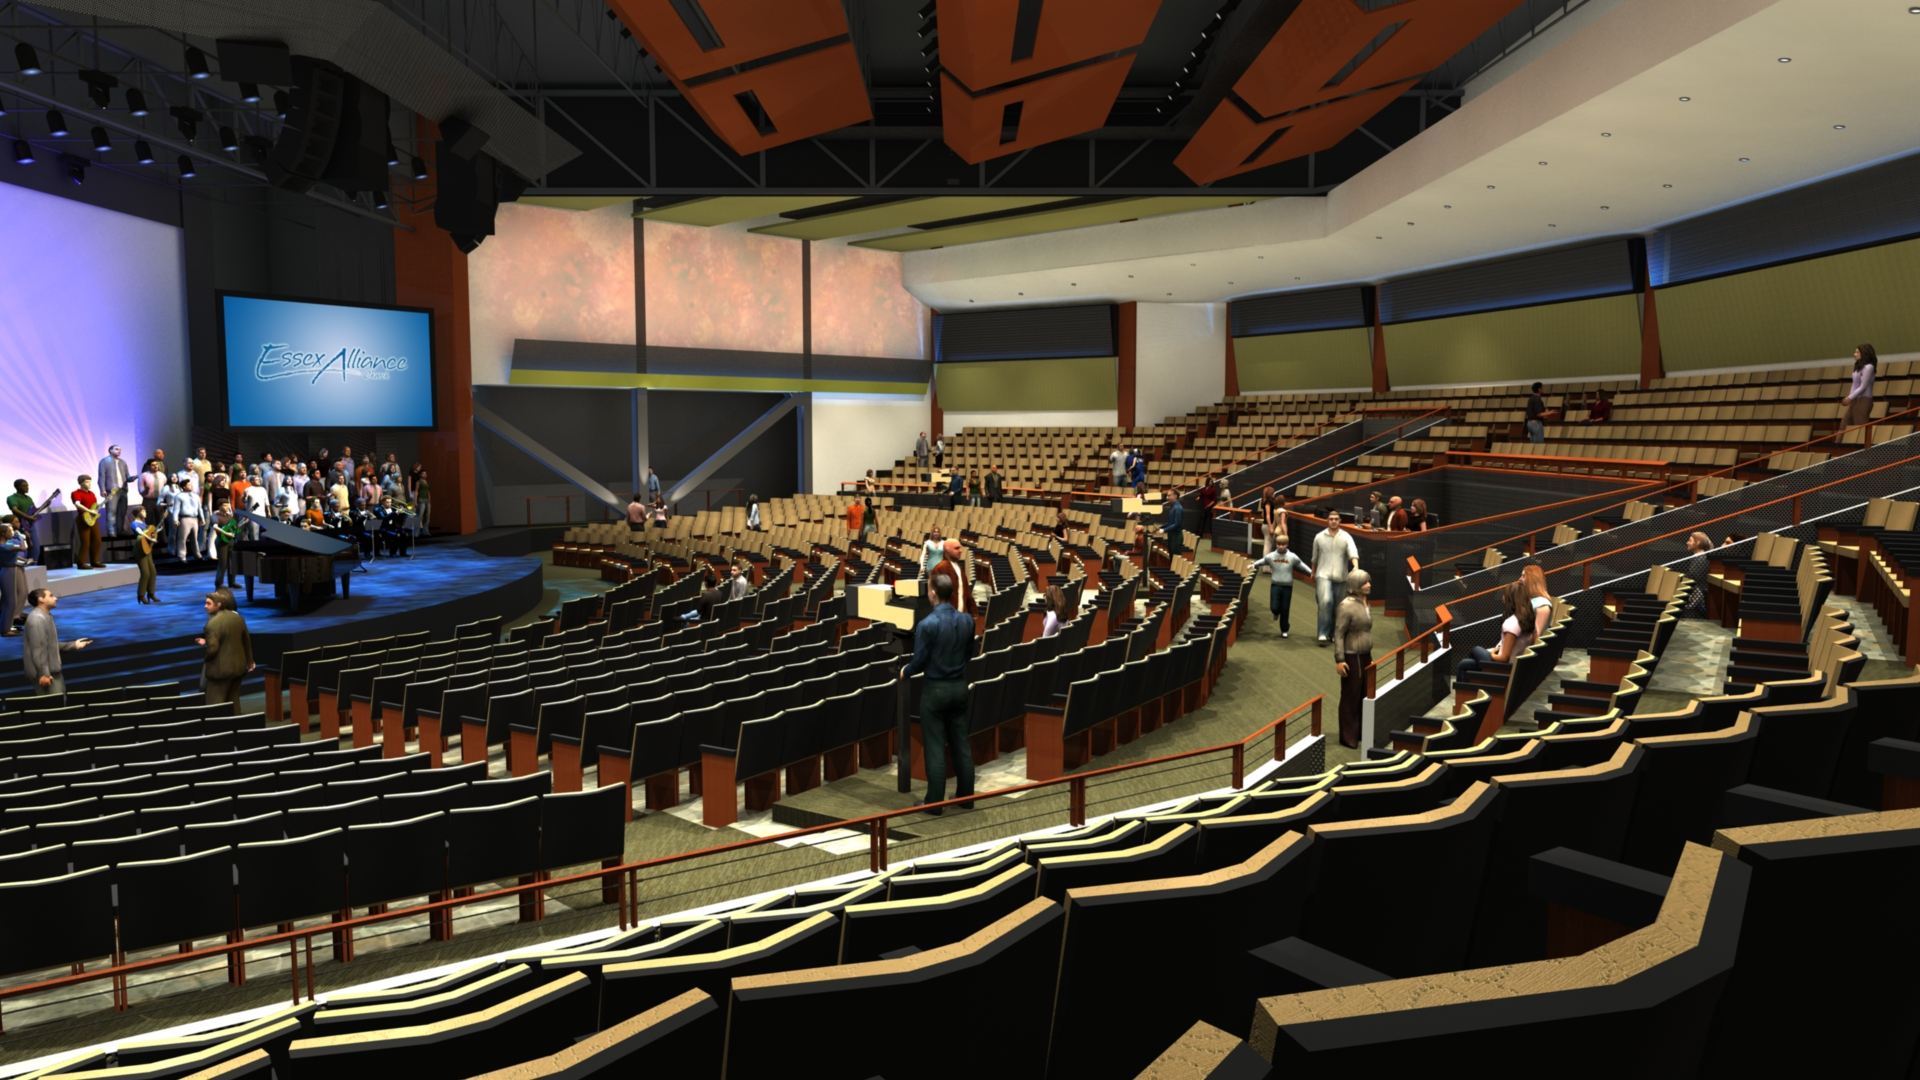 1,200 seat  auditorium / expandable to 2,000 seats